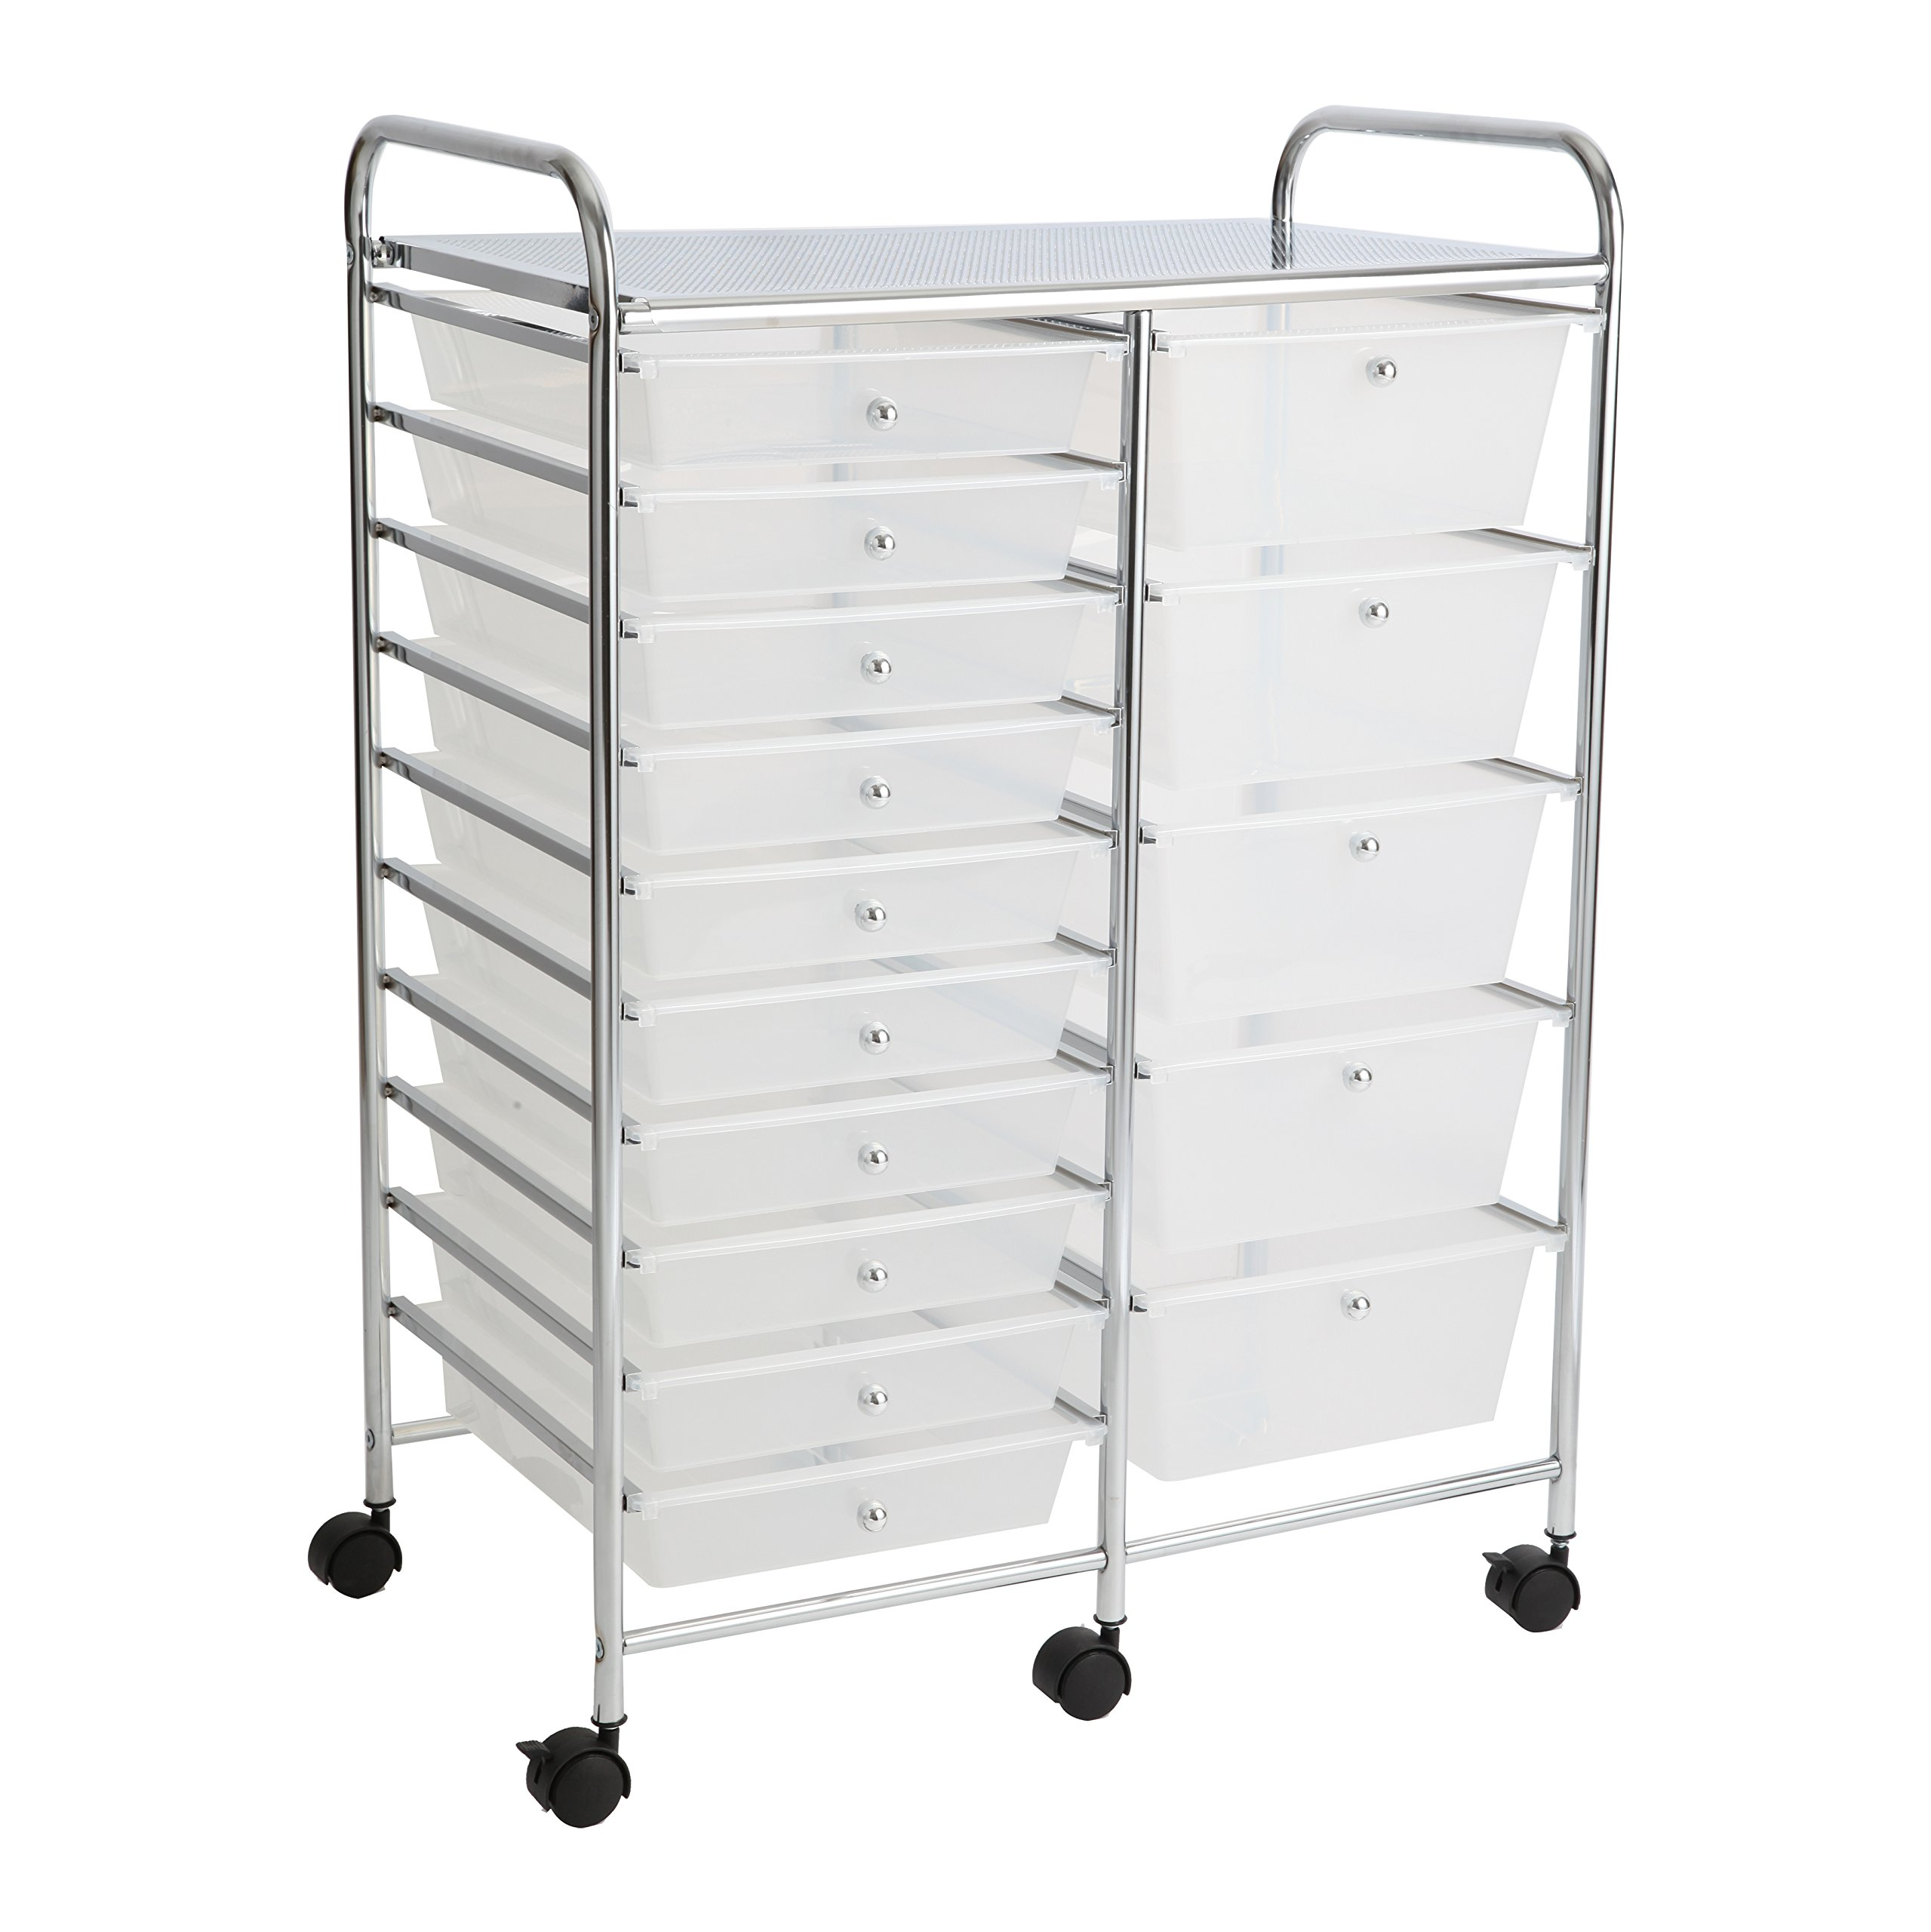 Finnhomy 15 Drawer Rolling Cart Organizer Storage Cart with Drawers Utility Cart for School Office Home Beauty Salon Storage Semi-Transparent White by Finnhomy